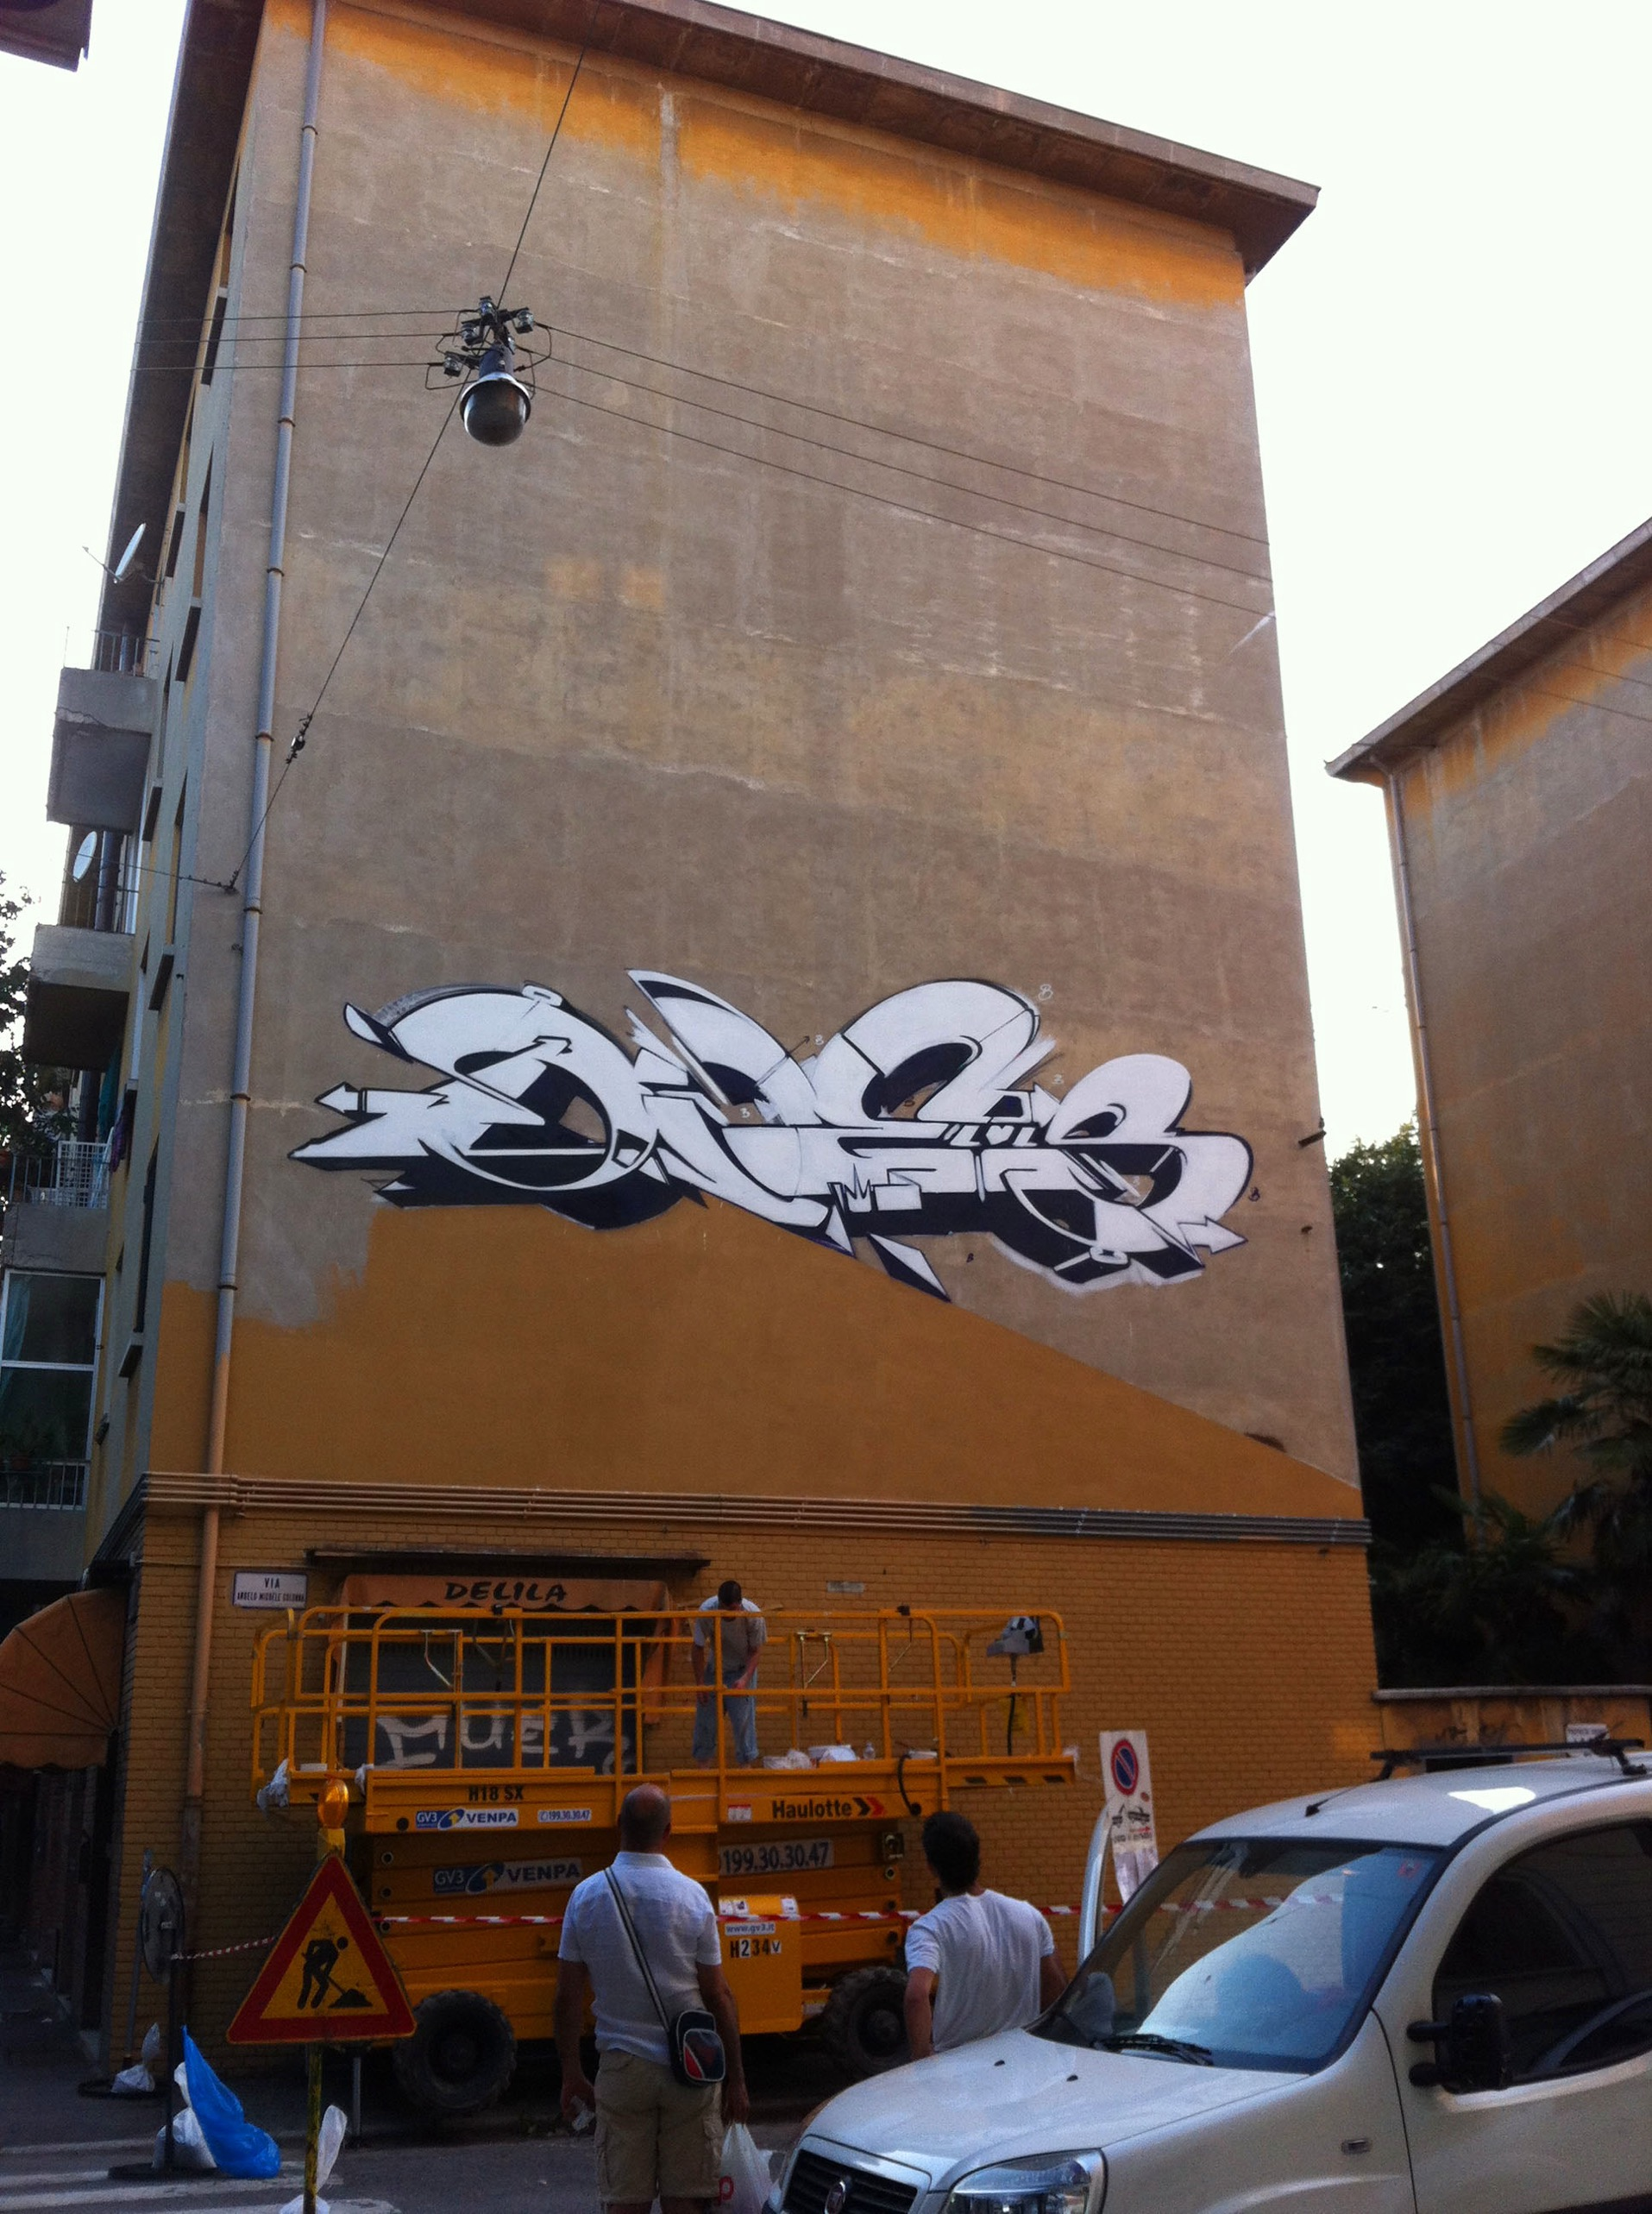 A work by Does - Frontier bologna italy detail 7